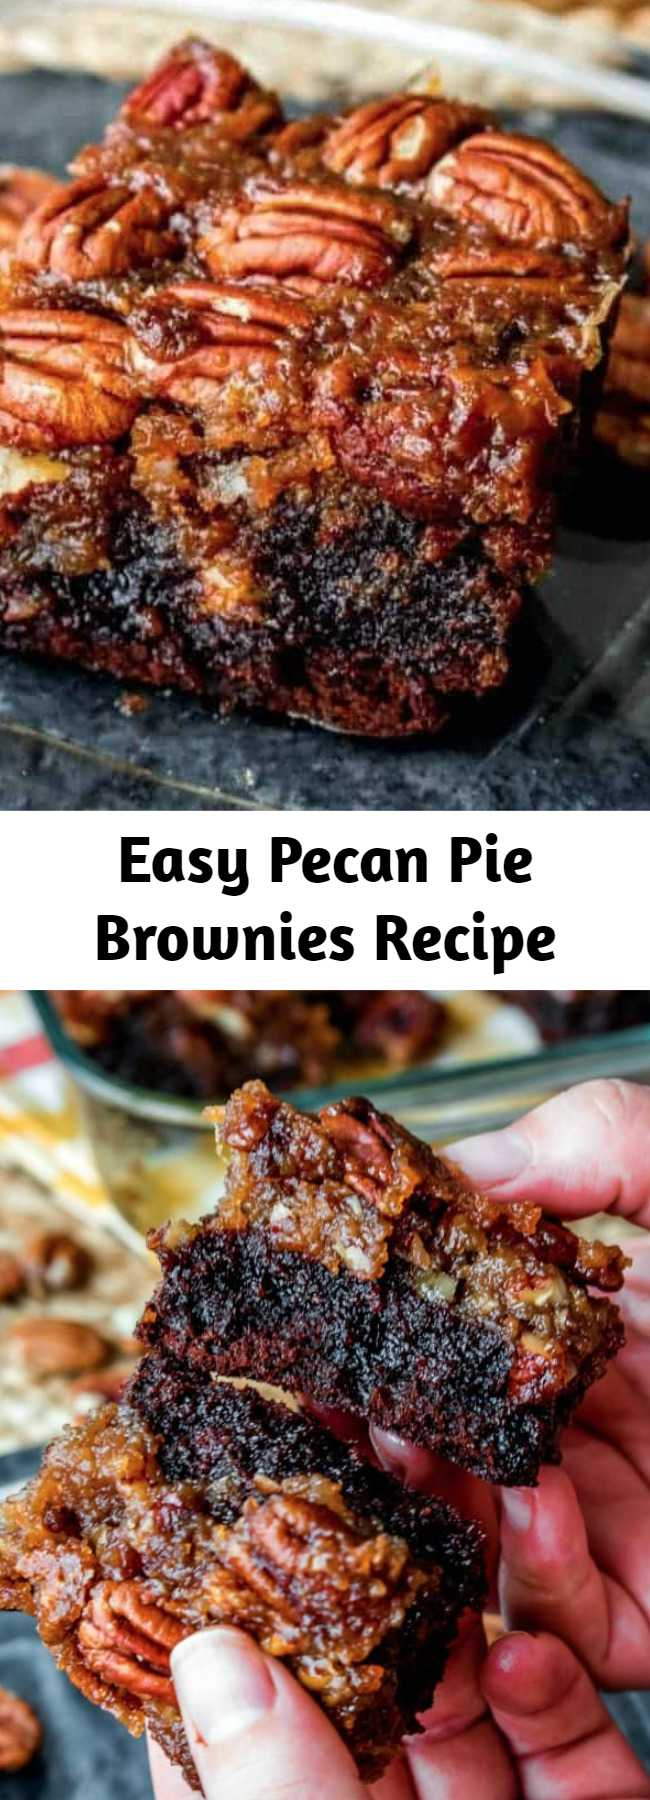 Easy Pecan Pie Brownies Recipe - These Pecan Pie Brownies are a chocolaty twist on the traditional pecan pie! They make a great Thanksgiving dessert but I like making them all year long!